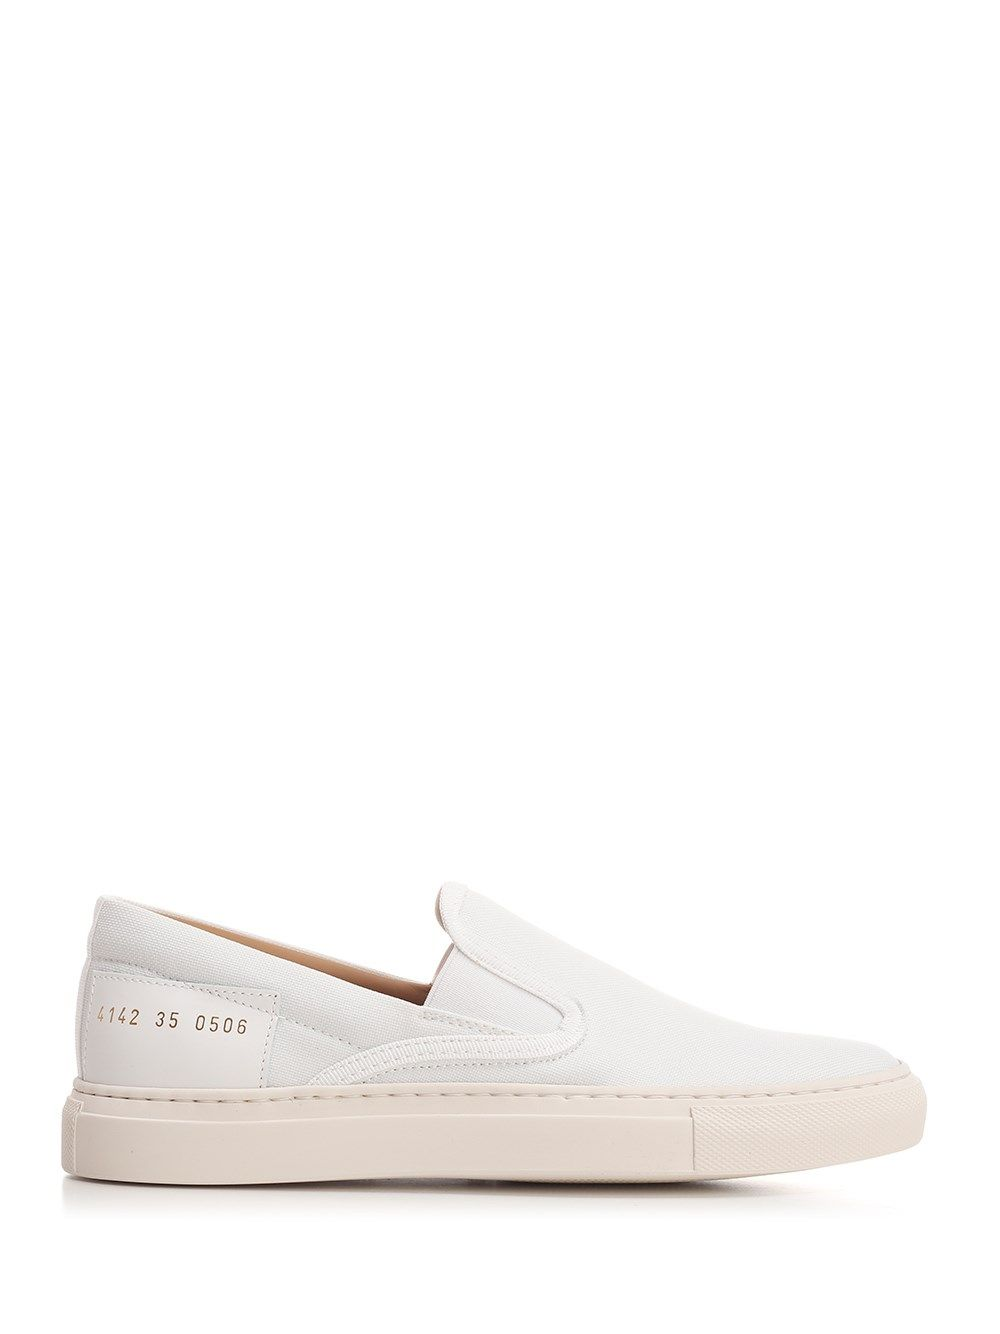 Common Projects Canvases COMMON PROJECTS WOMEN'S 41420506 WHITE OTHER MATERIALS SNEAKERS